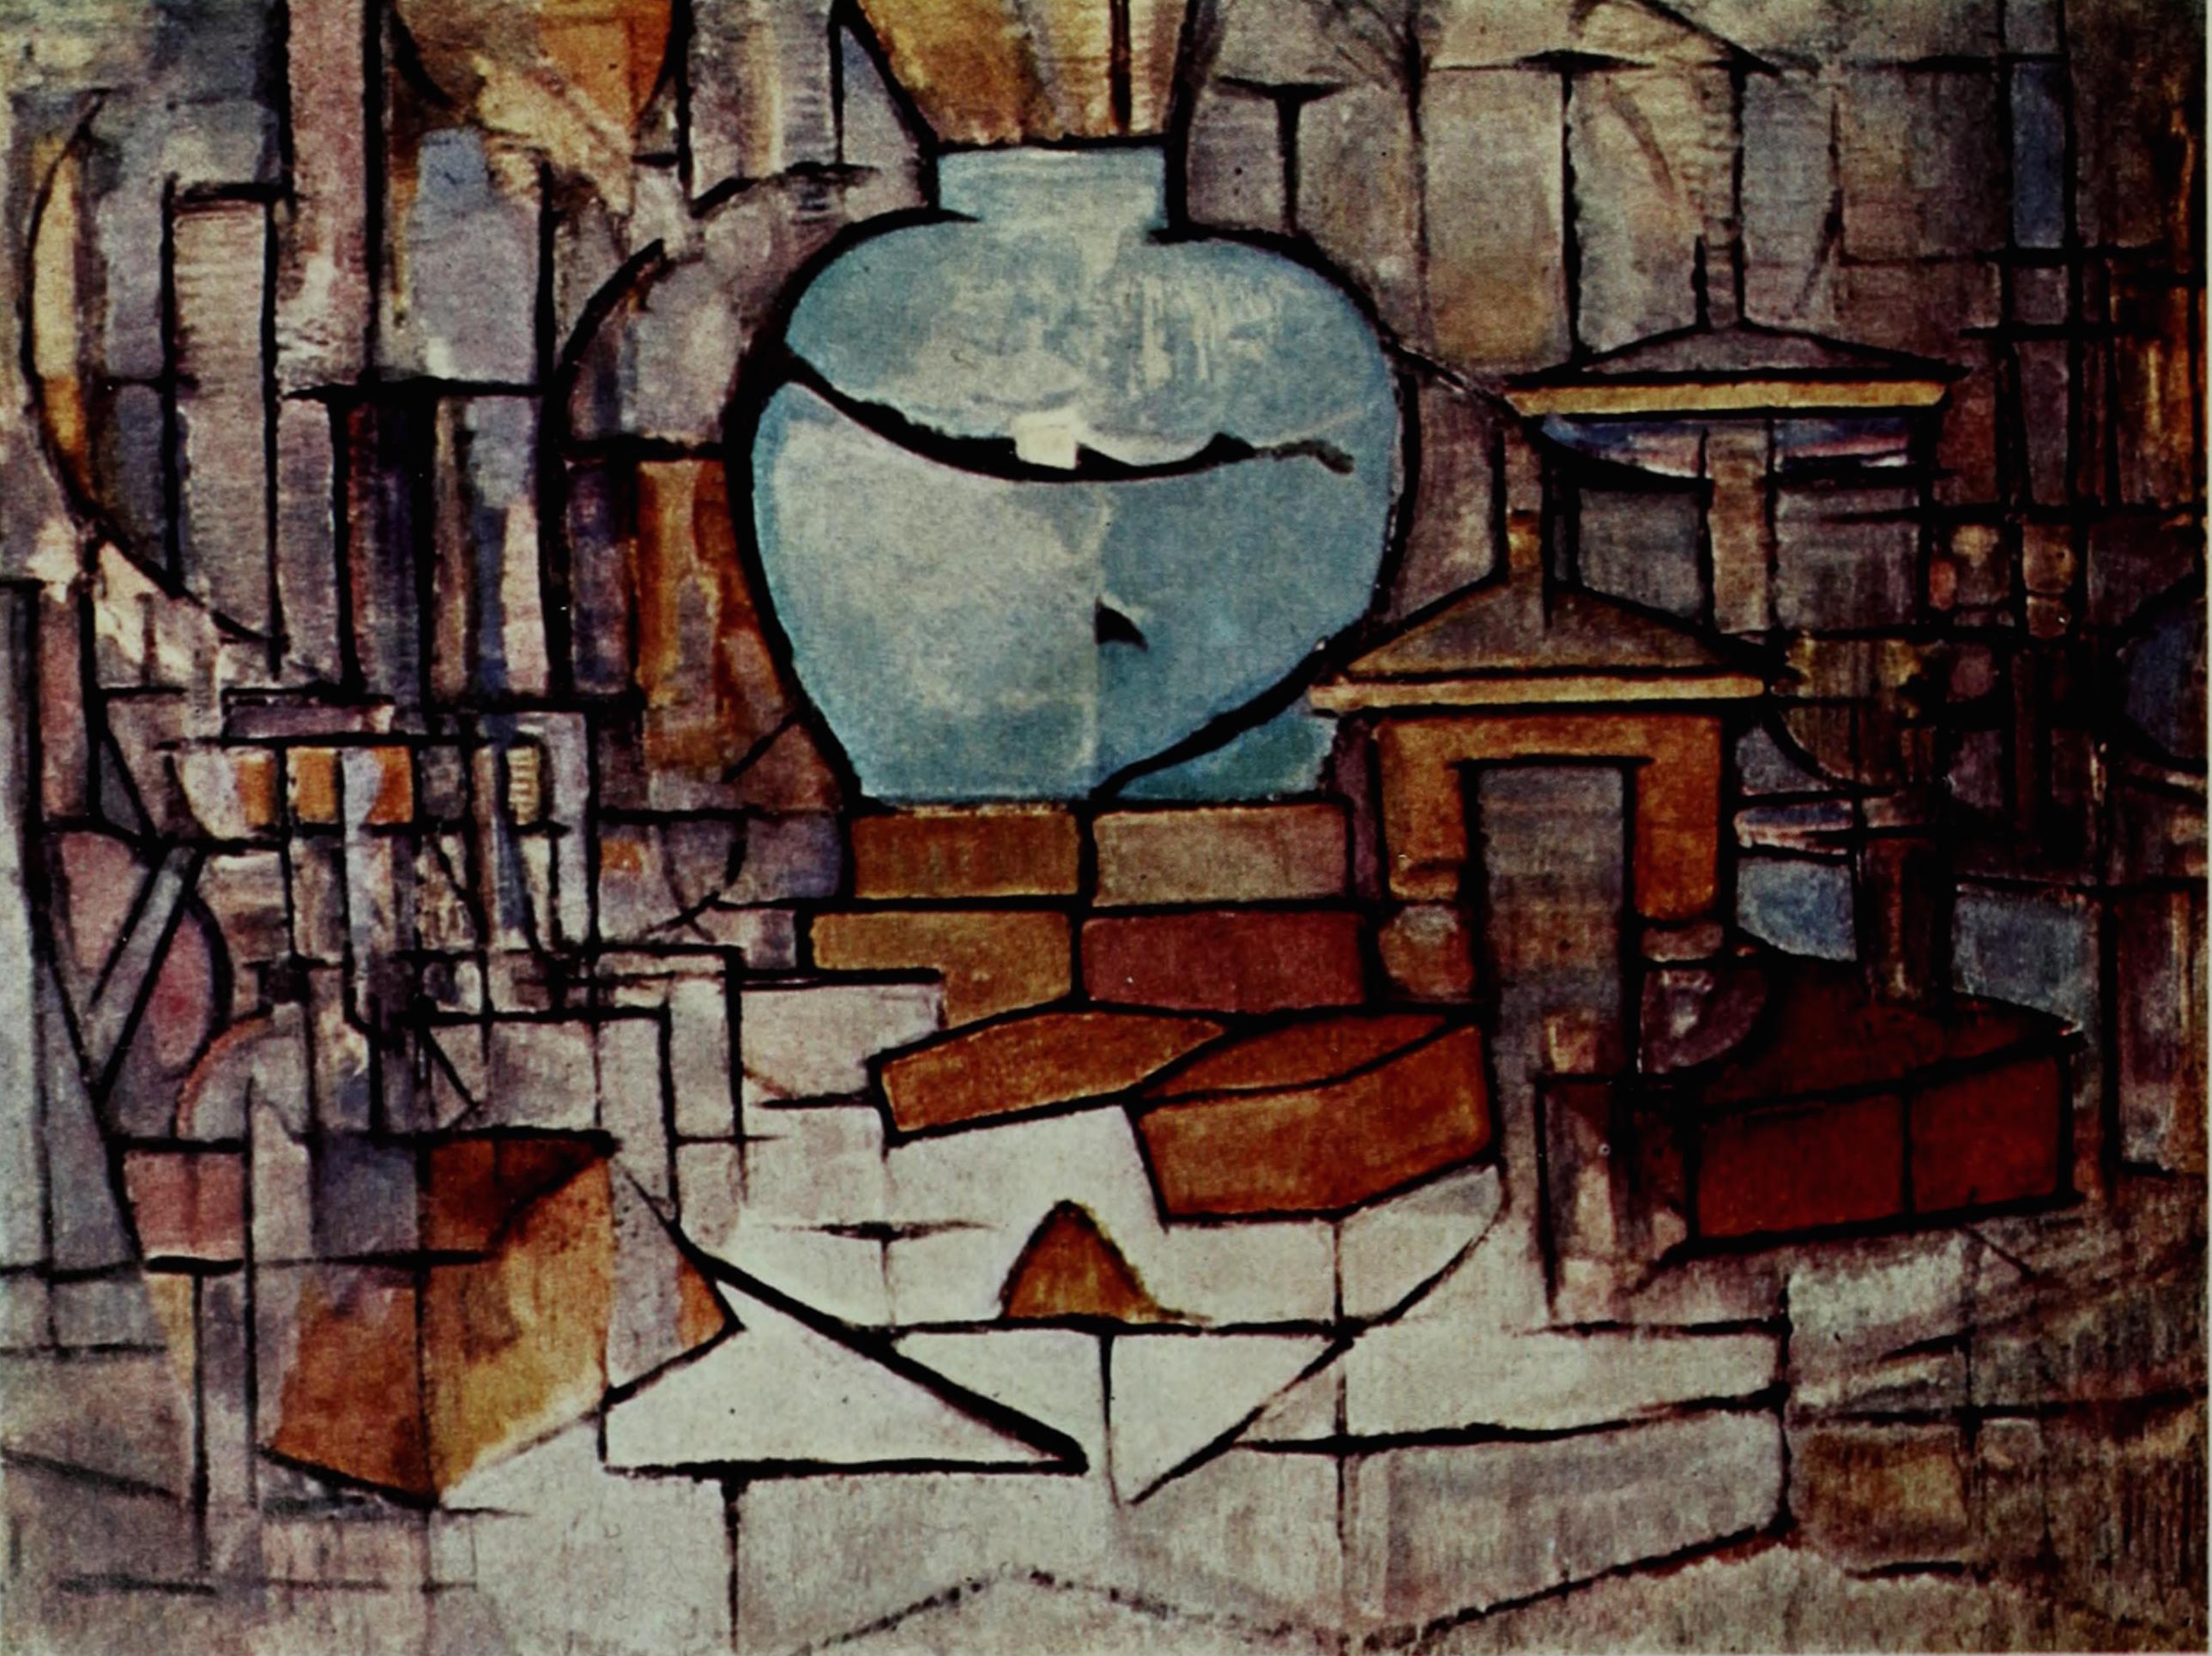 Still-life with Gingerpot I c. 1912, oil on canvas, 35 × 29 in (91 × 75 cm) Gemeentemuseum, The Hague